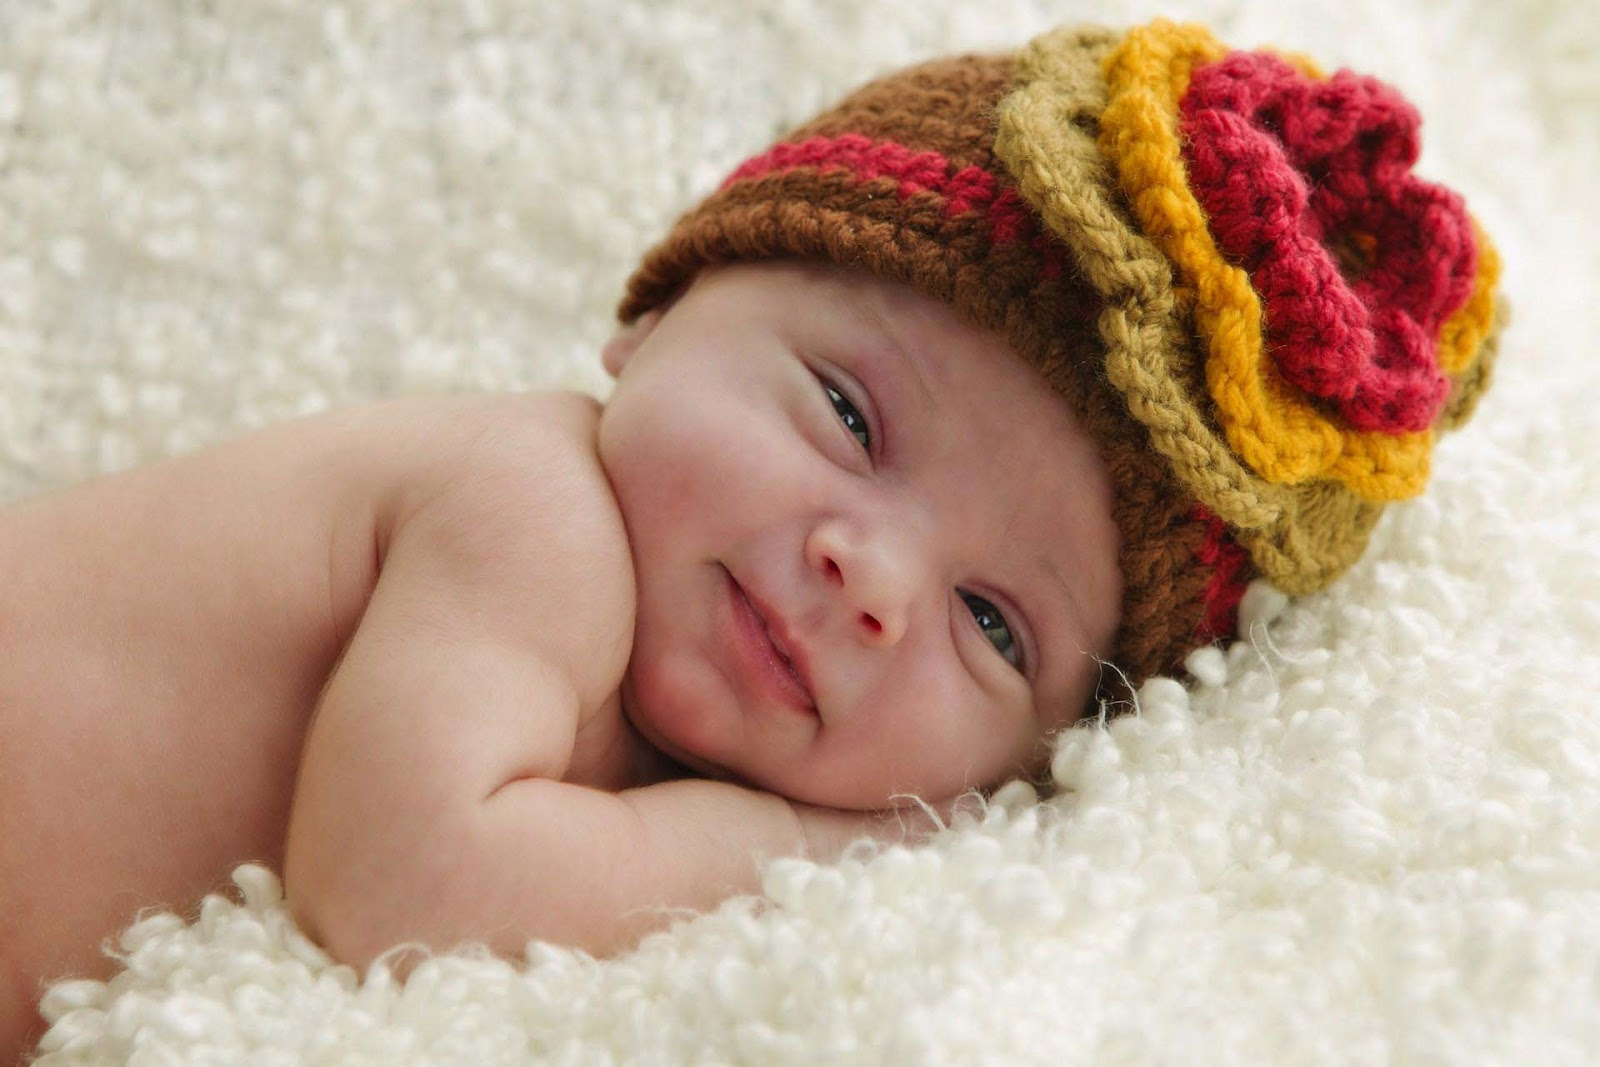 Hd Images Of Cute Babies: Cute And Lovely Baby Pictures Free Download